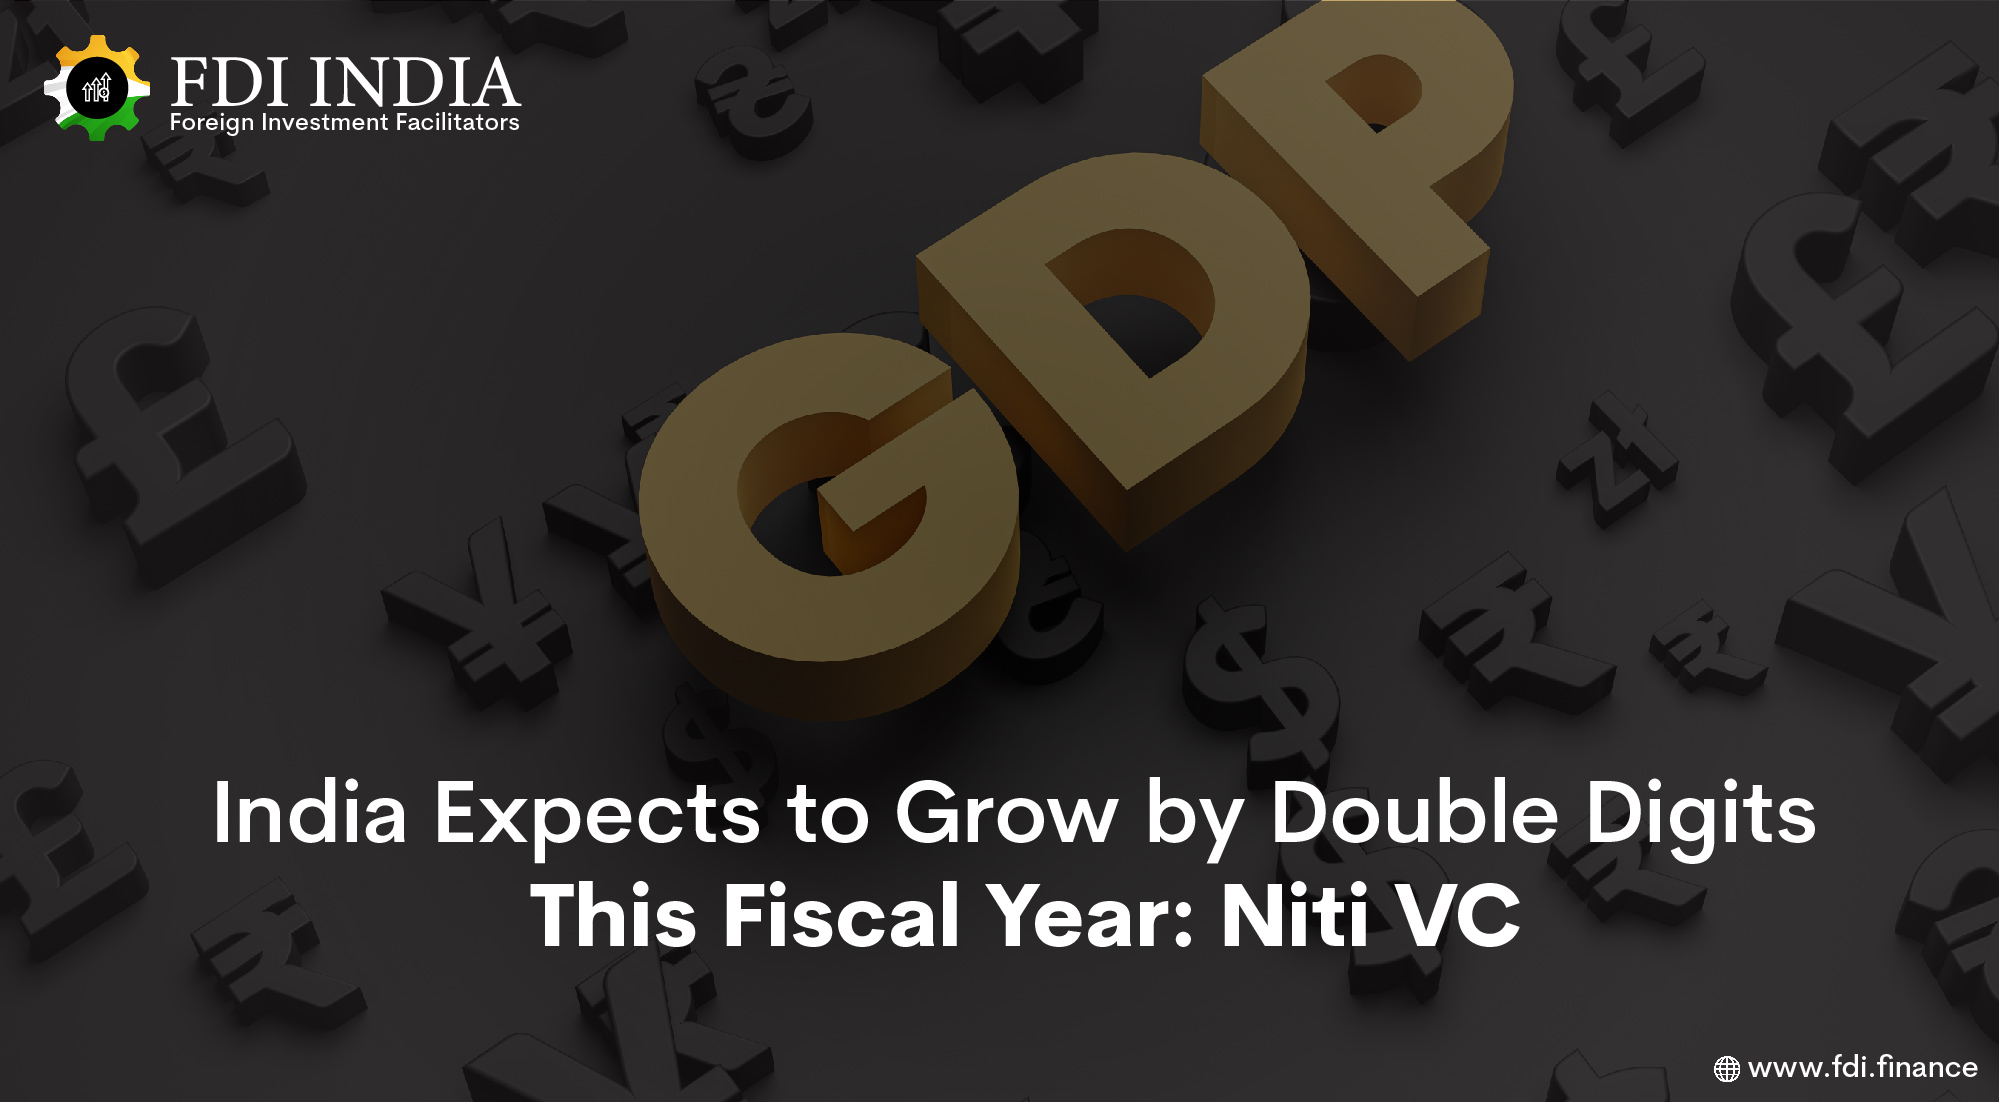 India Expects to Grow by Double Digits This Fiscal Year: Niti VC